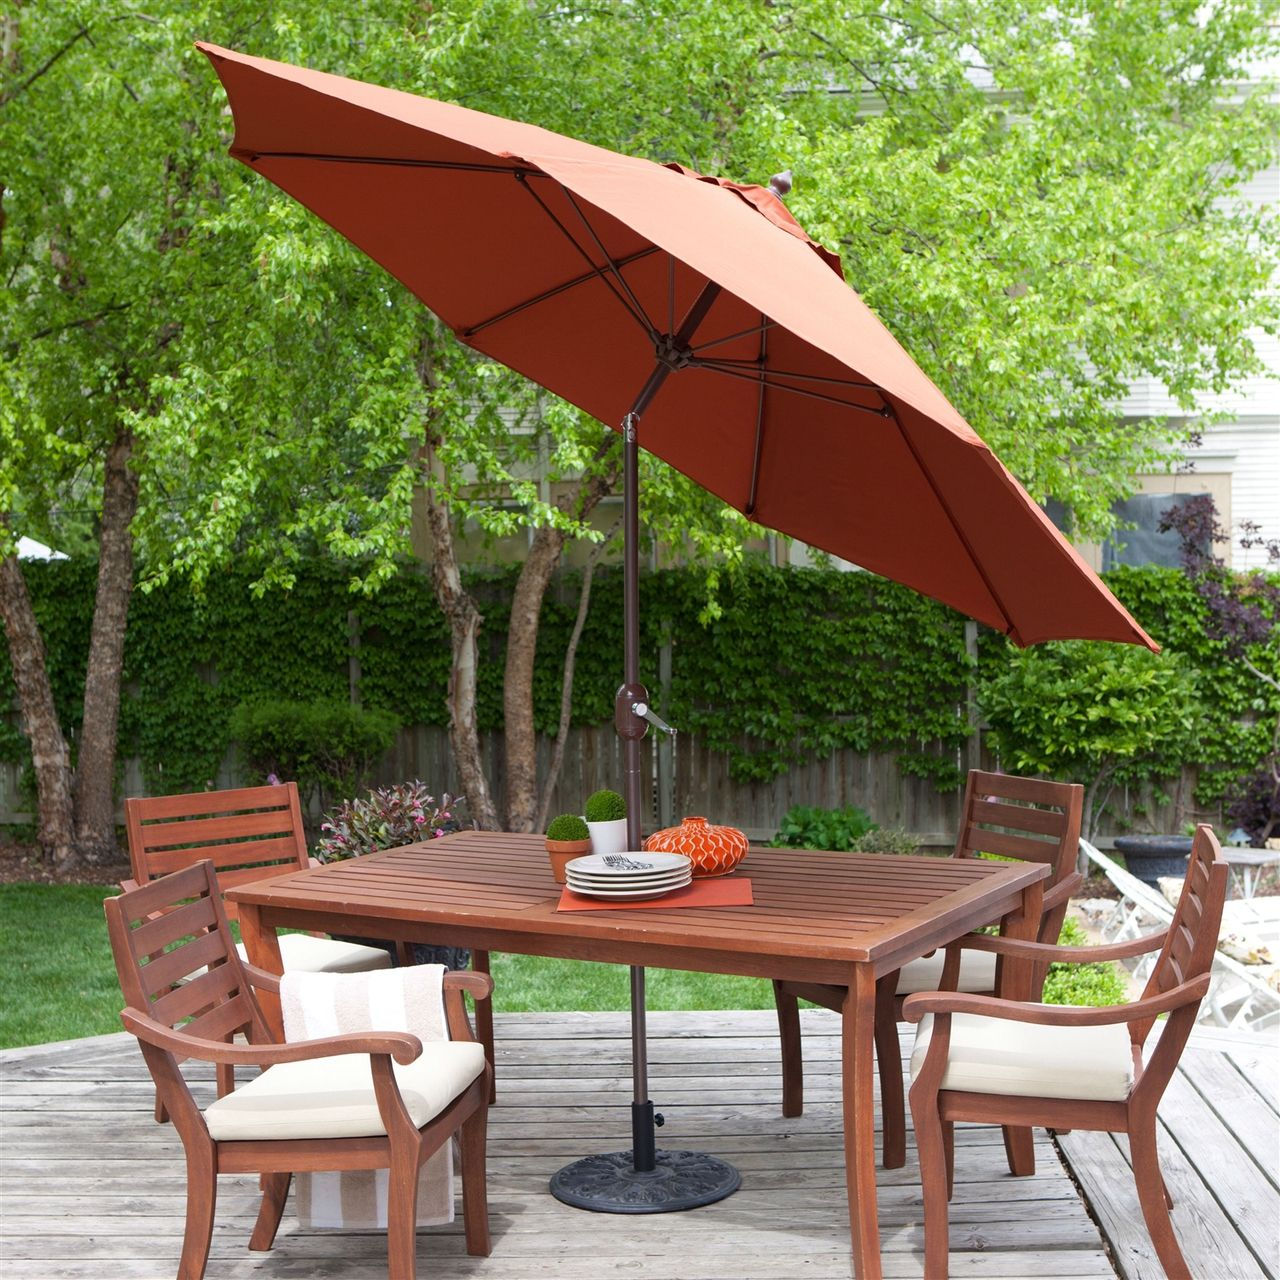 9 Ft Tilt Patio Umbrella With Rust Red Orange Shade And Bronze Finish Pole Quality House